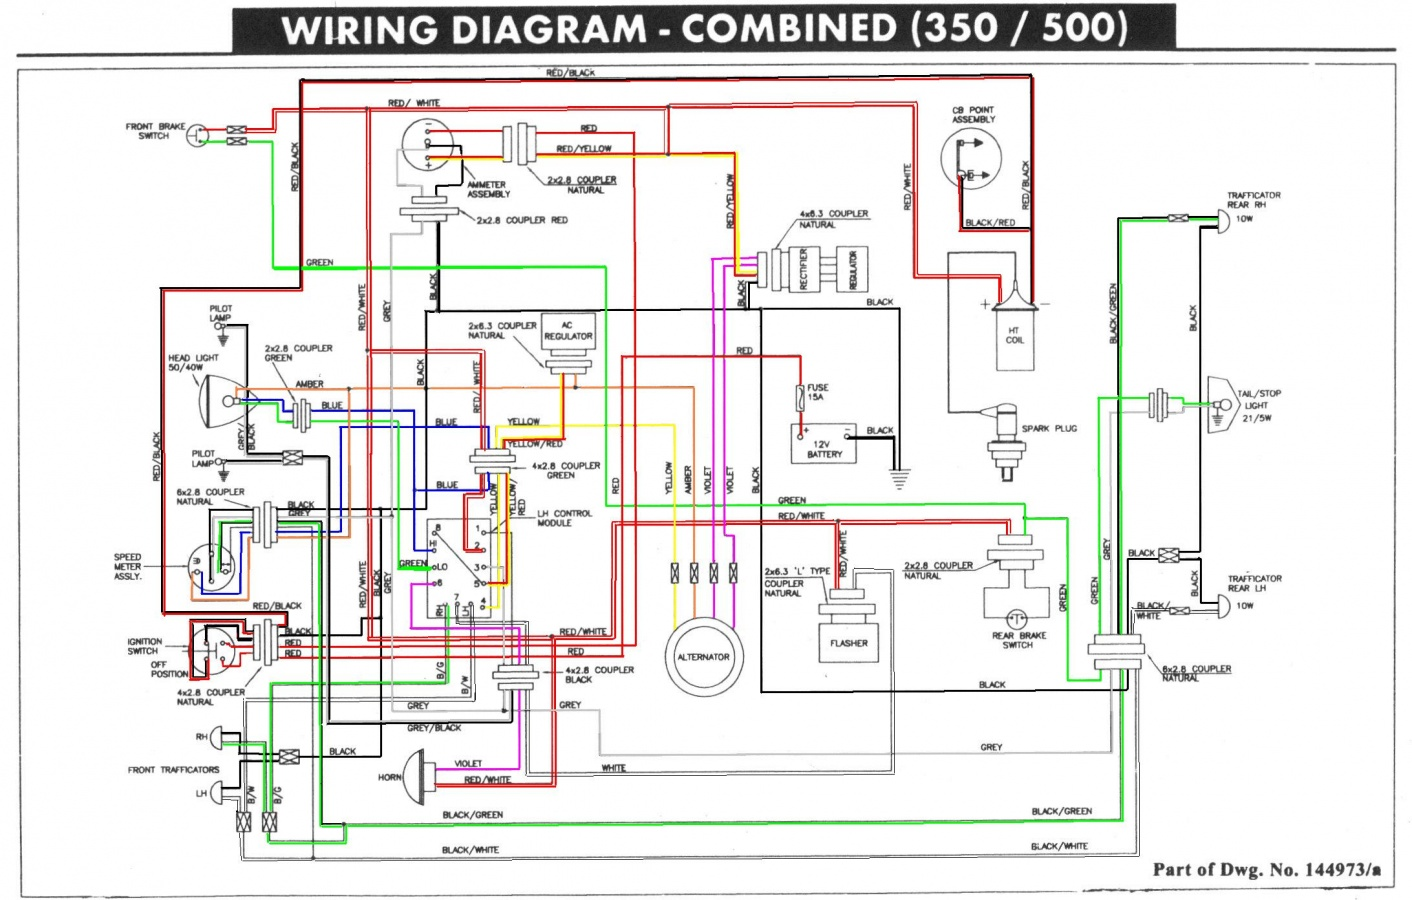 royal enfield e start wiring diagram all kind of wiring diagrams u2022 rh universalservices co